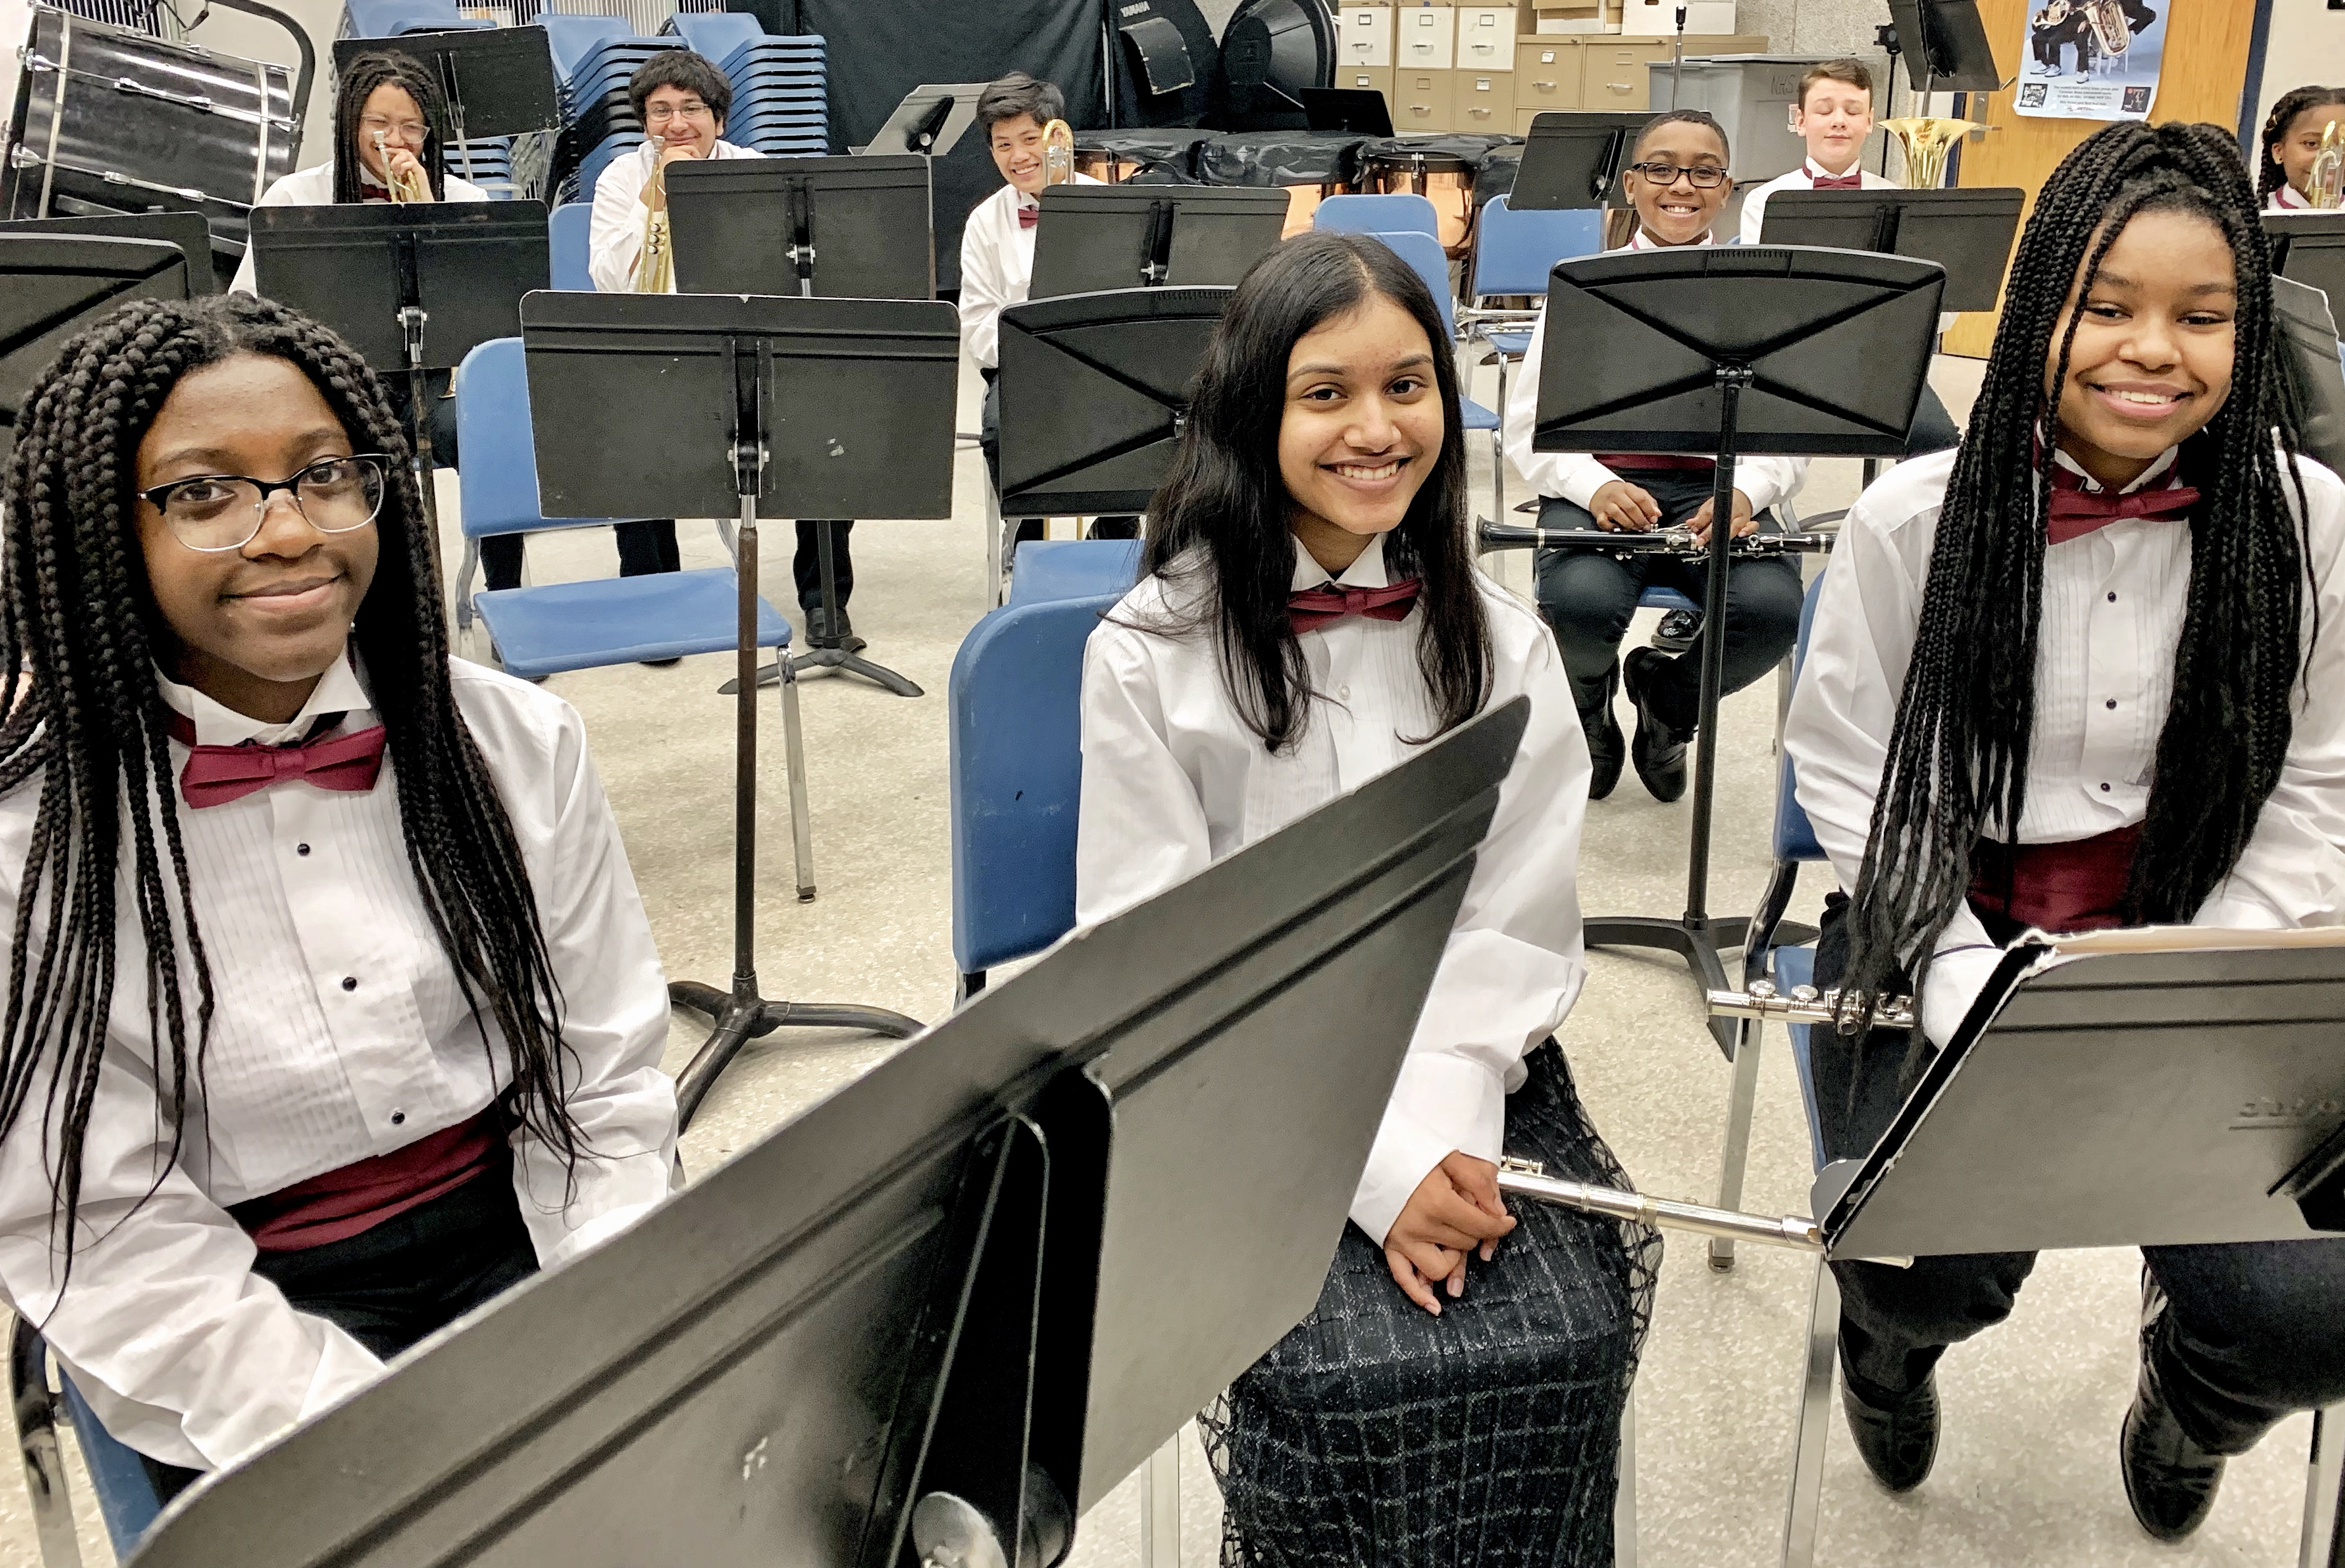 students showed music skills during the annual instrumental festival